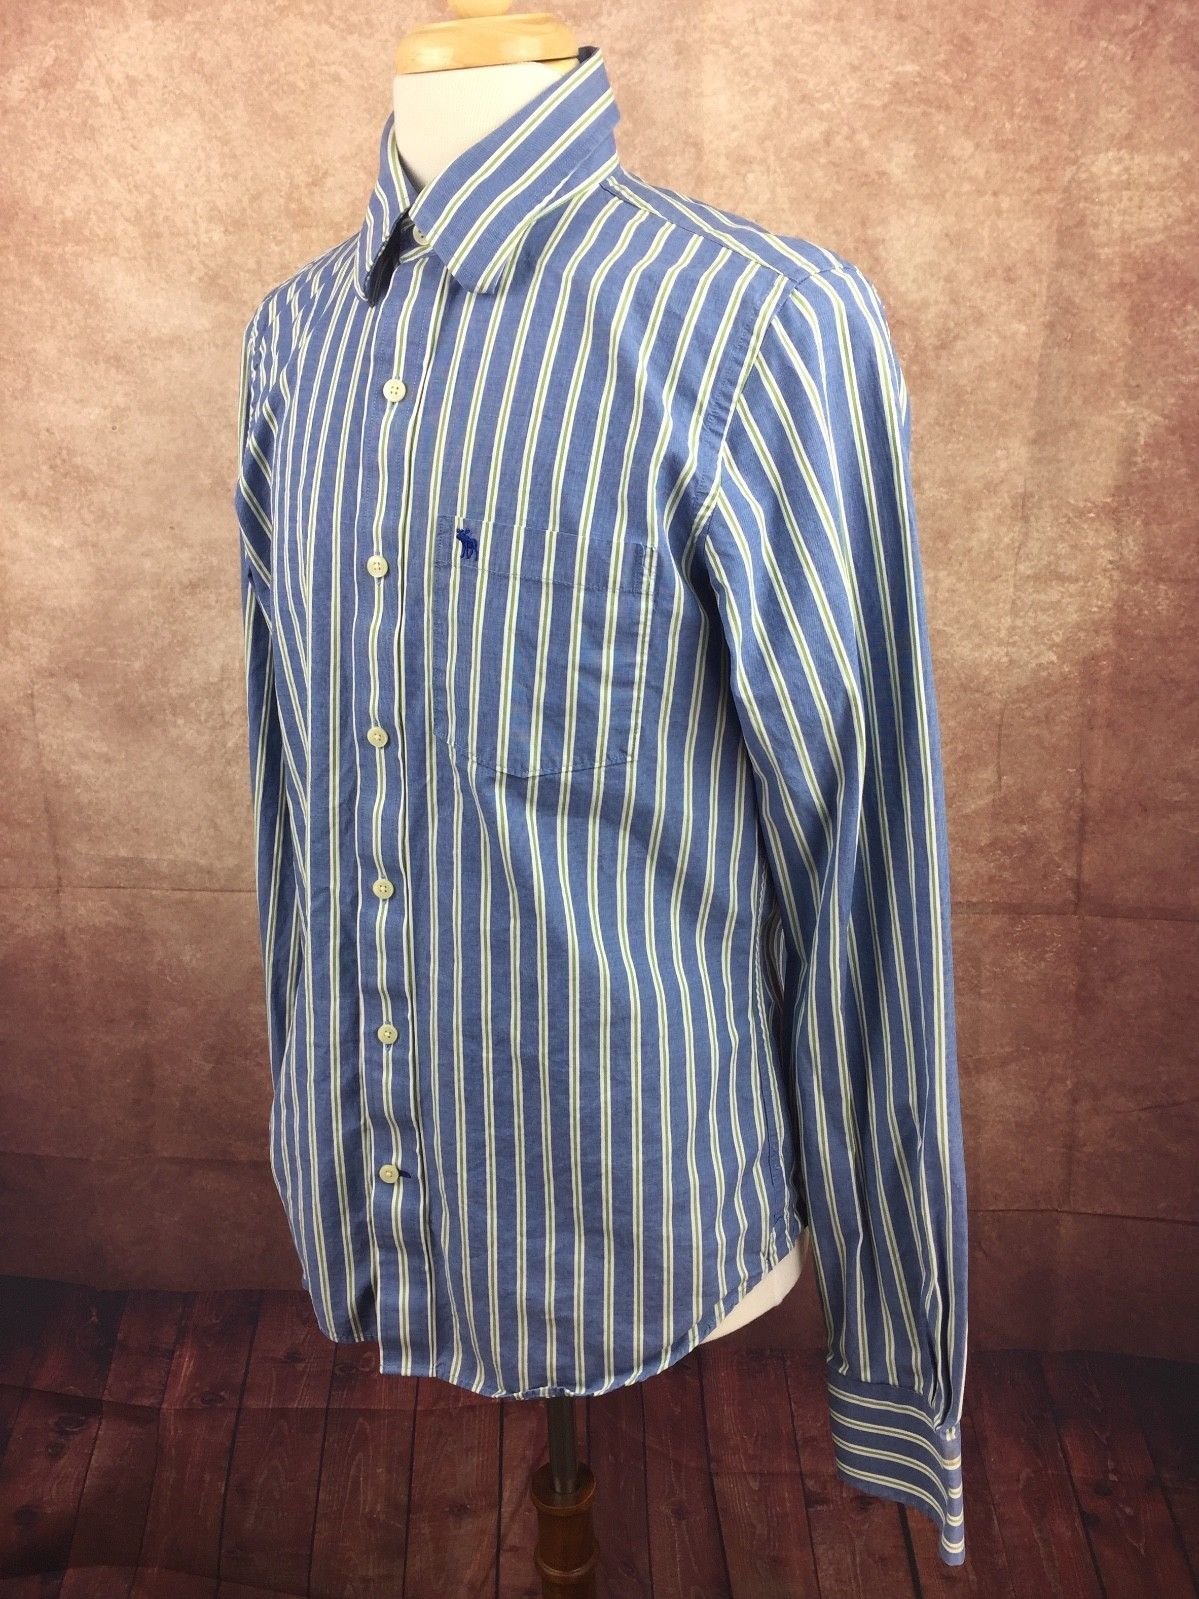 Abercrombie & Fitch Muscle Long Sleeve Button Down Shirt Blue Stripe Men's Large